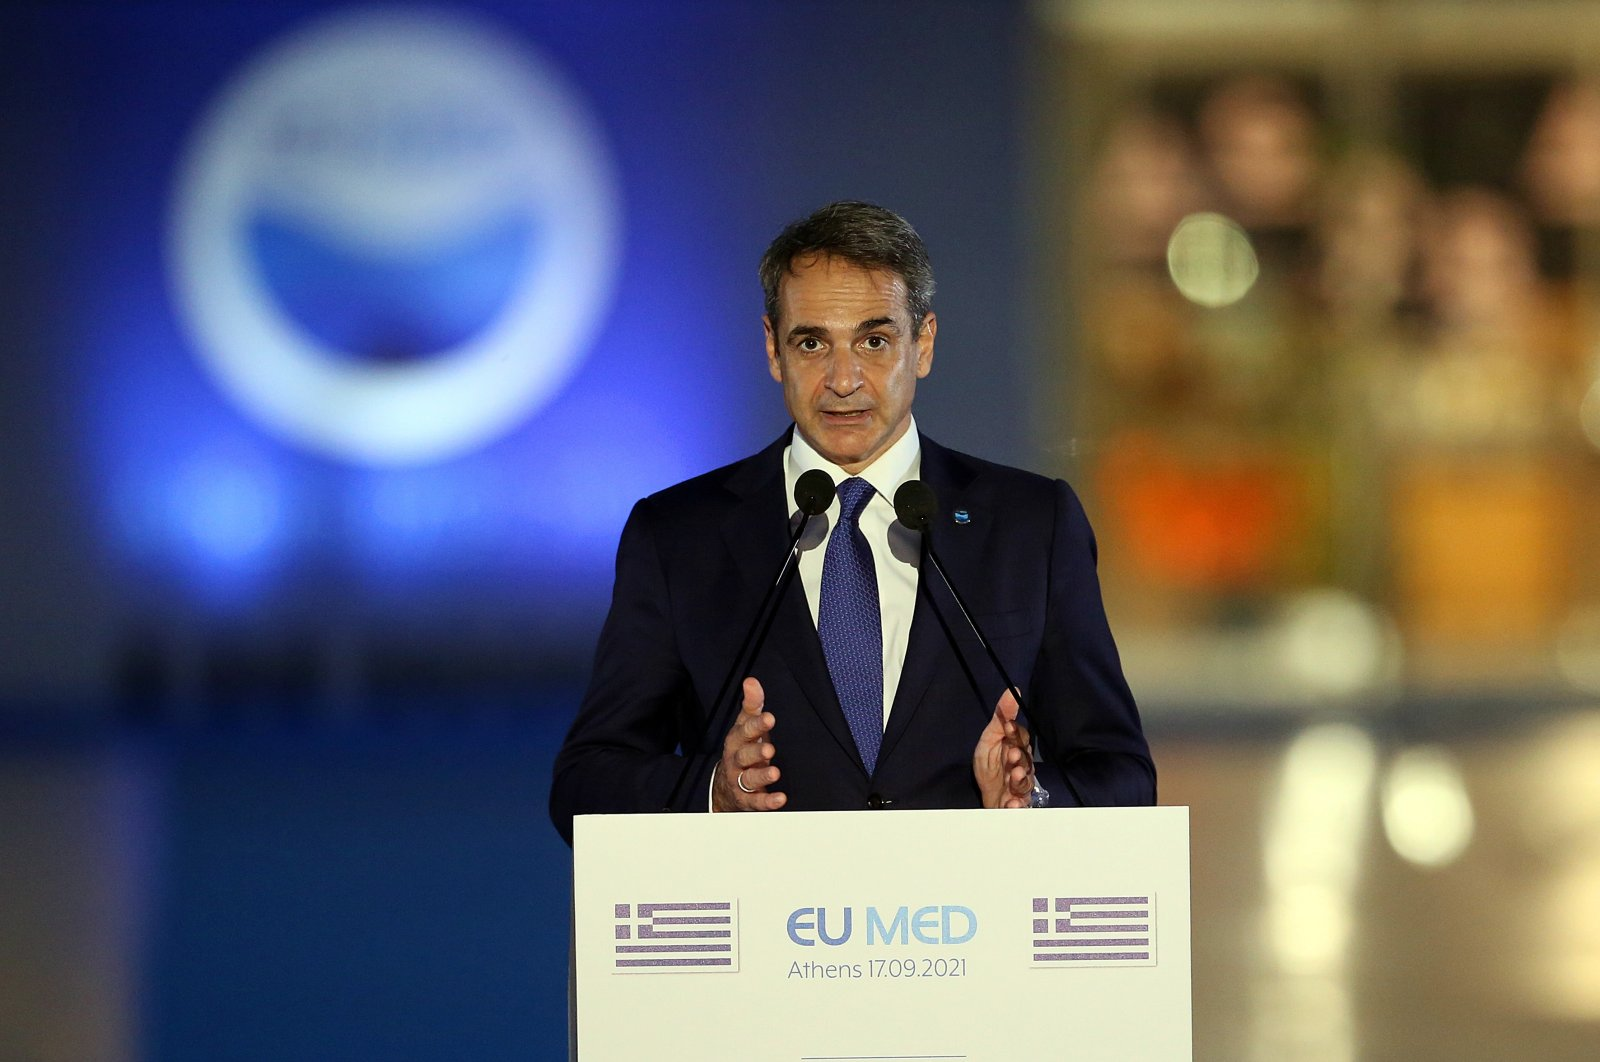 Greek Prime Minister Kyriakos Mitsotakis makes statements during the EUMed9 Summit, in Athens, Greece, Sept. 17, 2021. (EPA Photo)